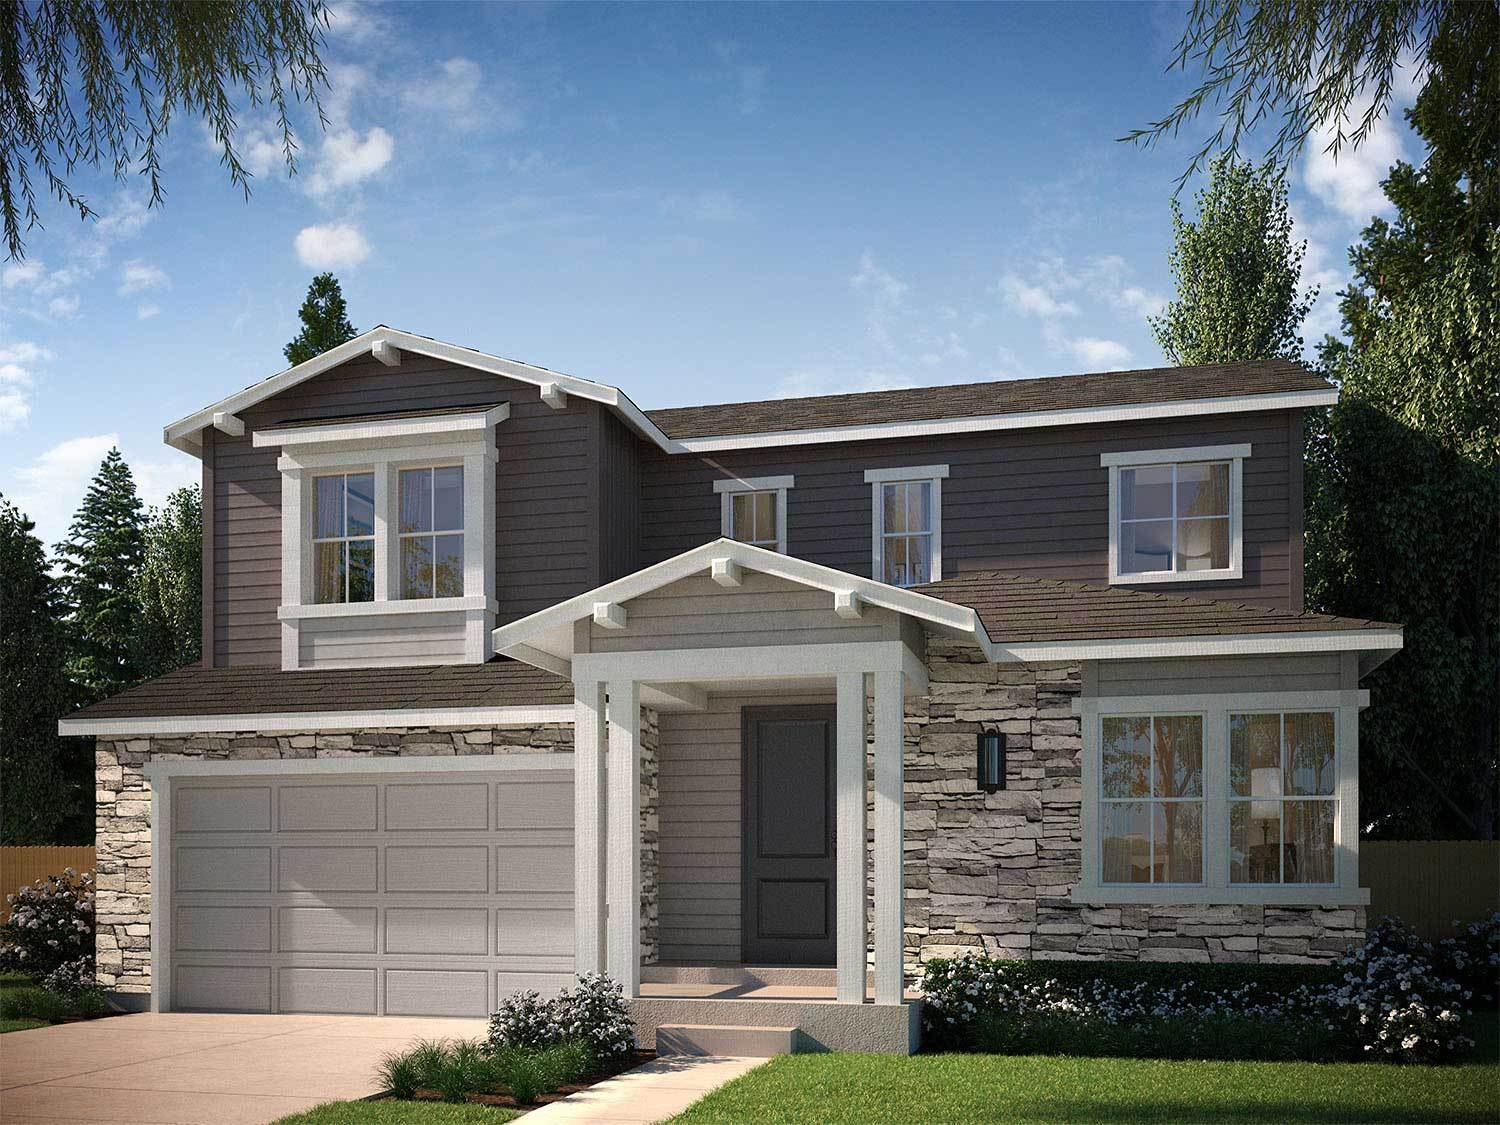 Tri pointe homes debut collection in ravenwood village at for Ravenwood homes